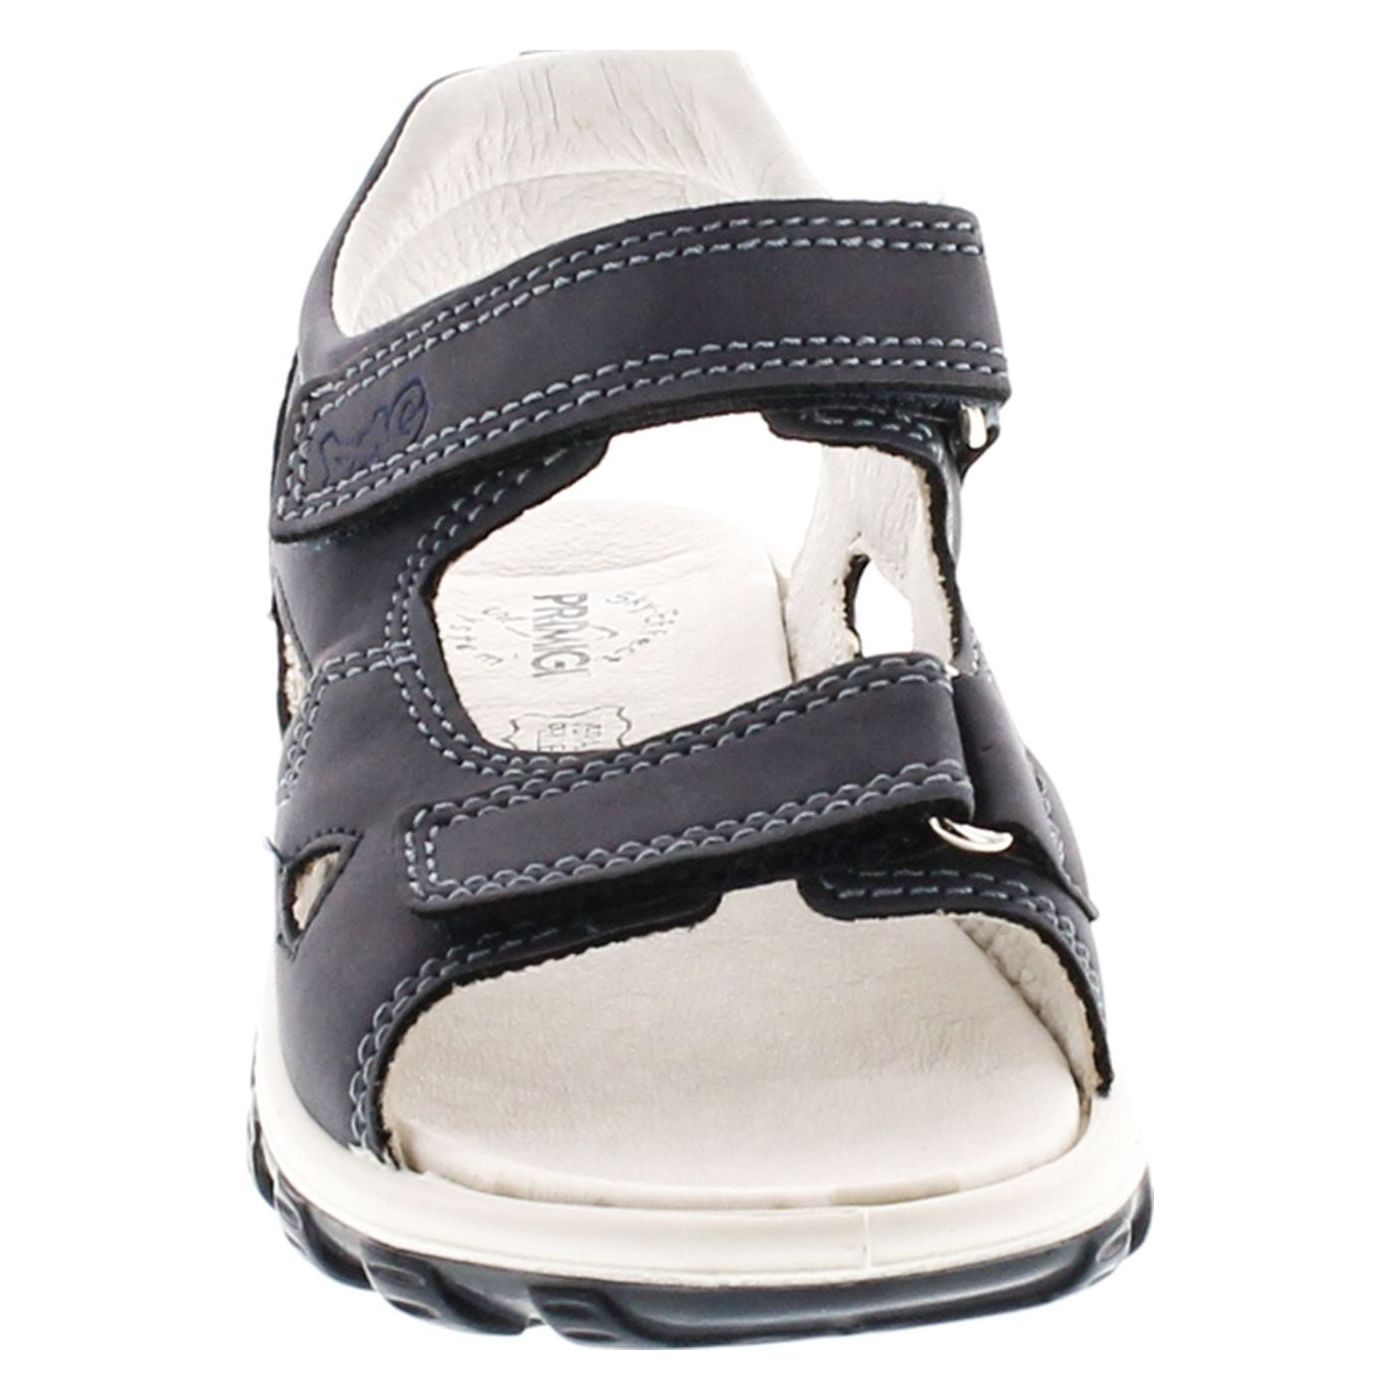 Primigi Boys 13944 Leather European Double Adjustable Fashion Sandals